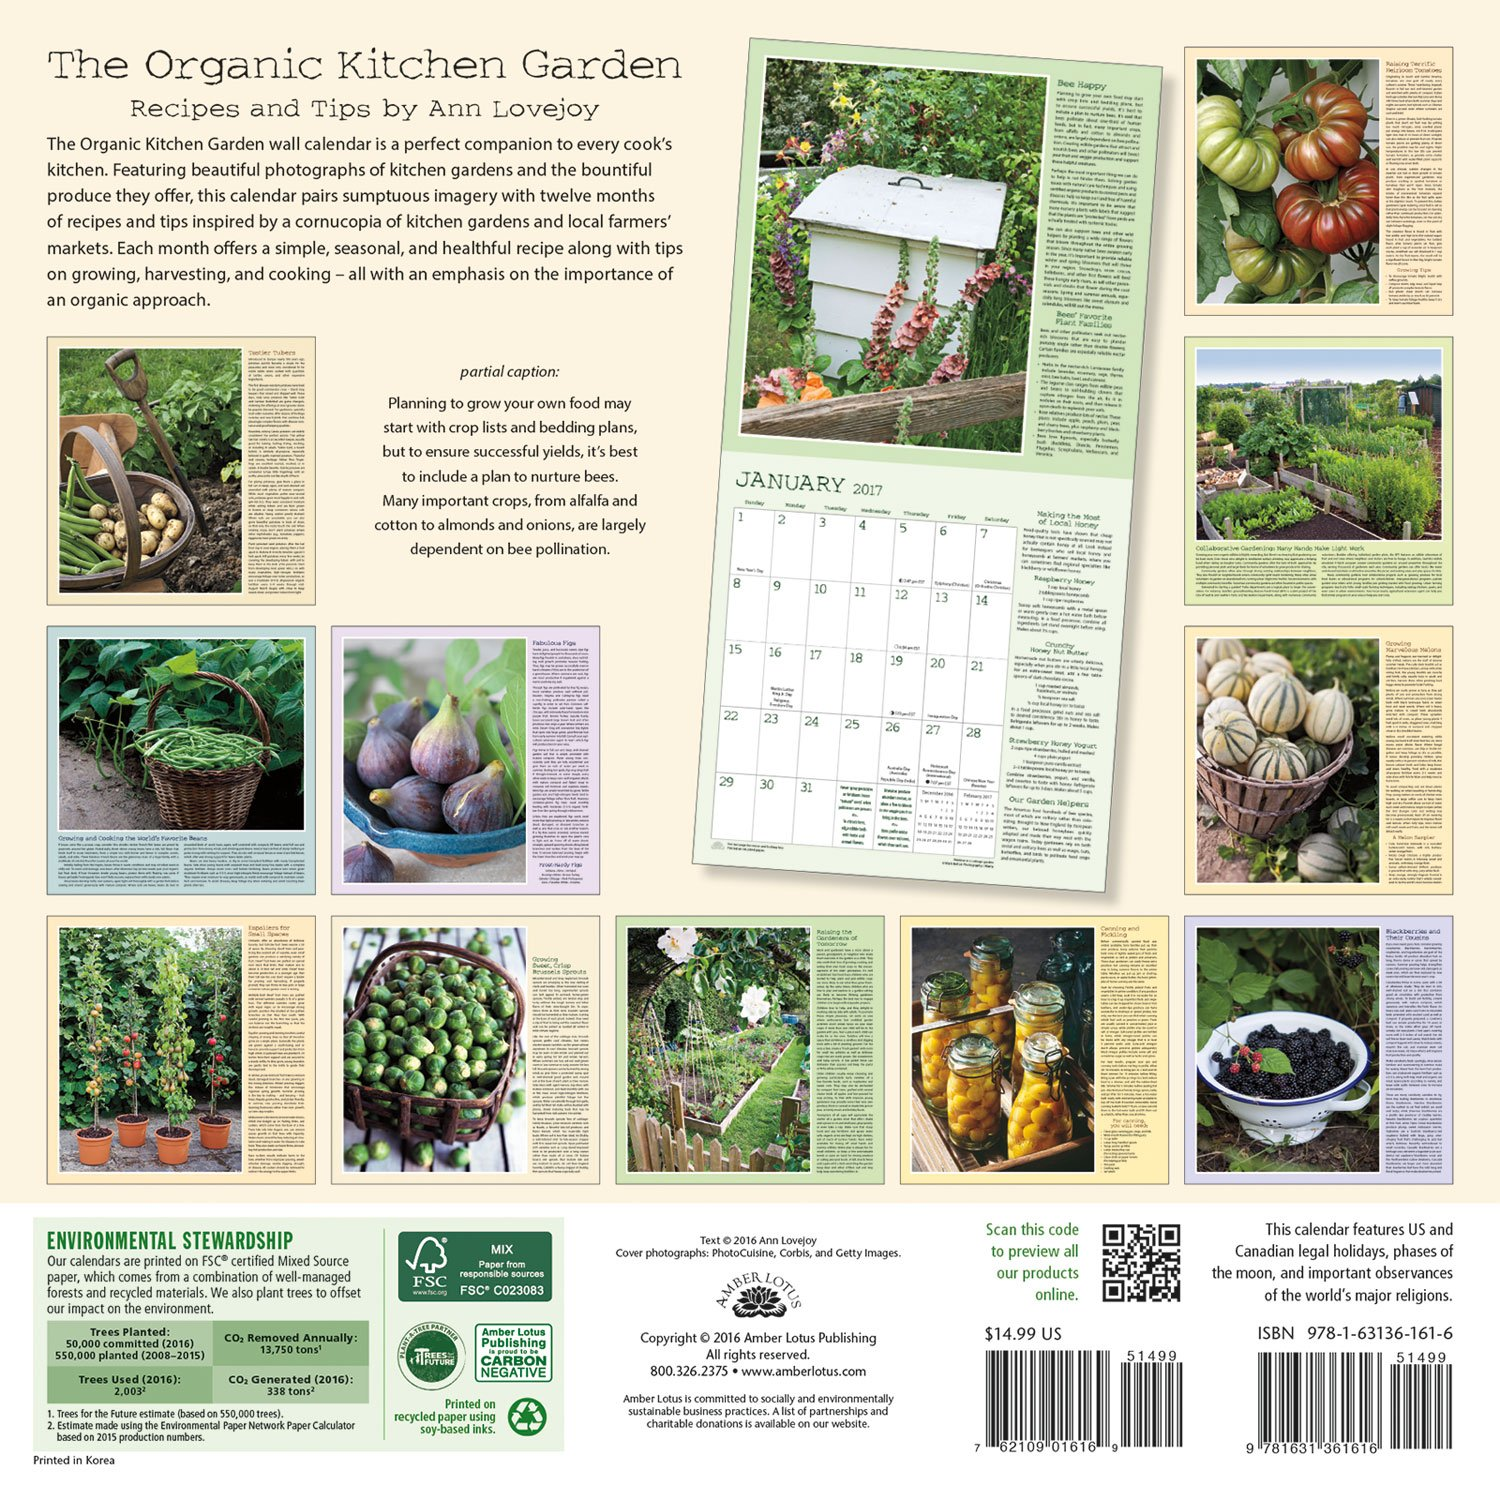 The Organic Kitchen Garden 2017 Wall Calendar: Recipes and Tips by Ann  Lovejoy: Ann Lovejoy, Amber Lotus Publishing: 9781631361616: Amazon.com:  Books